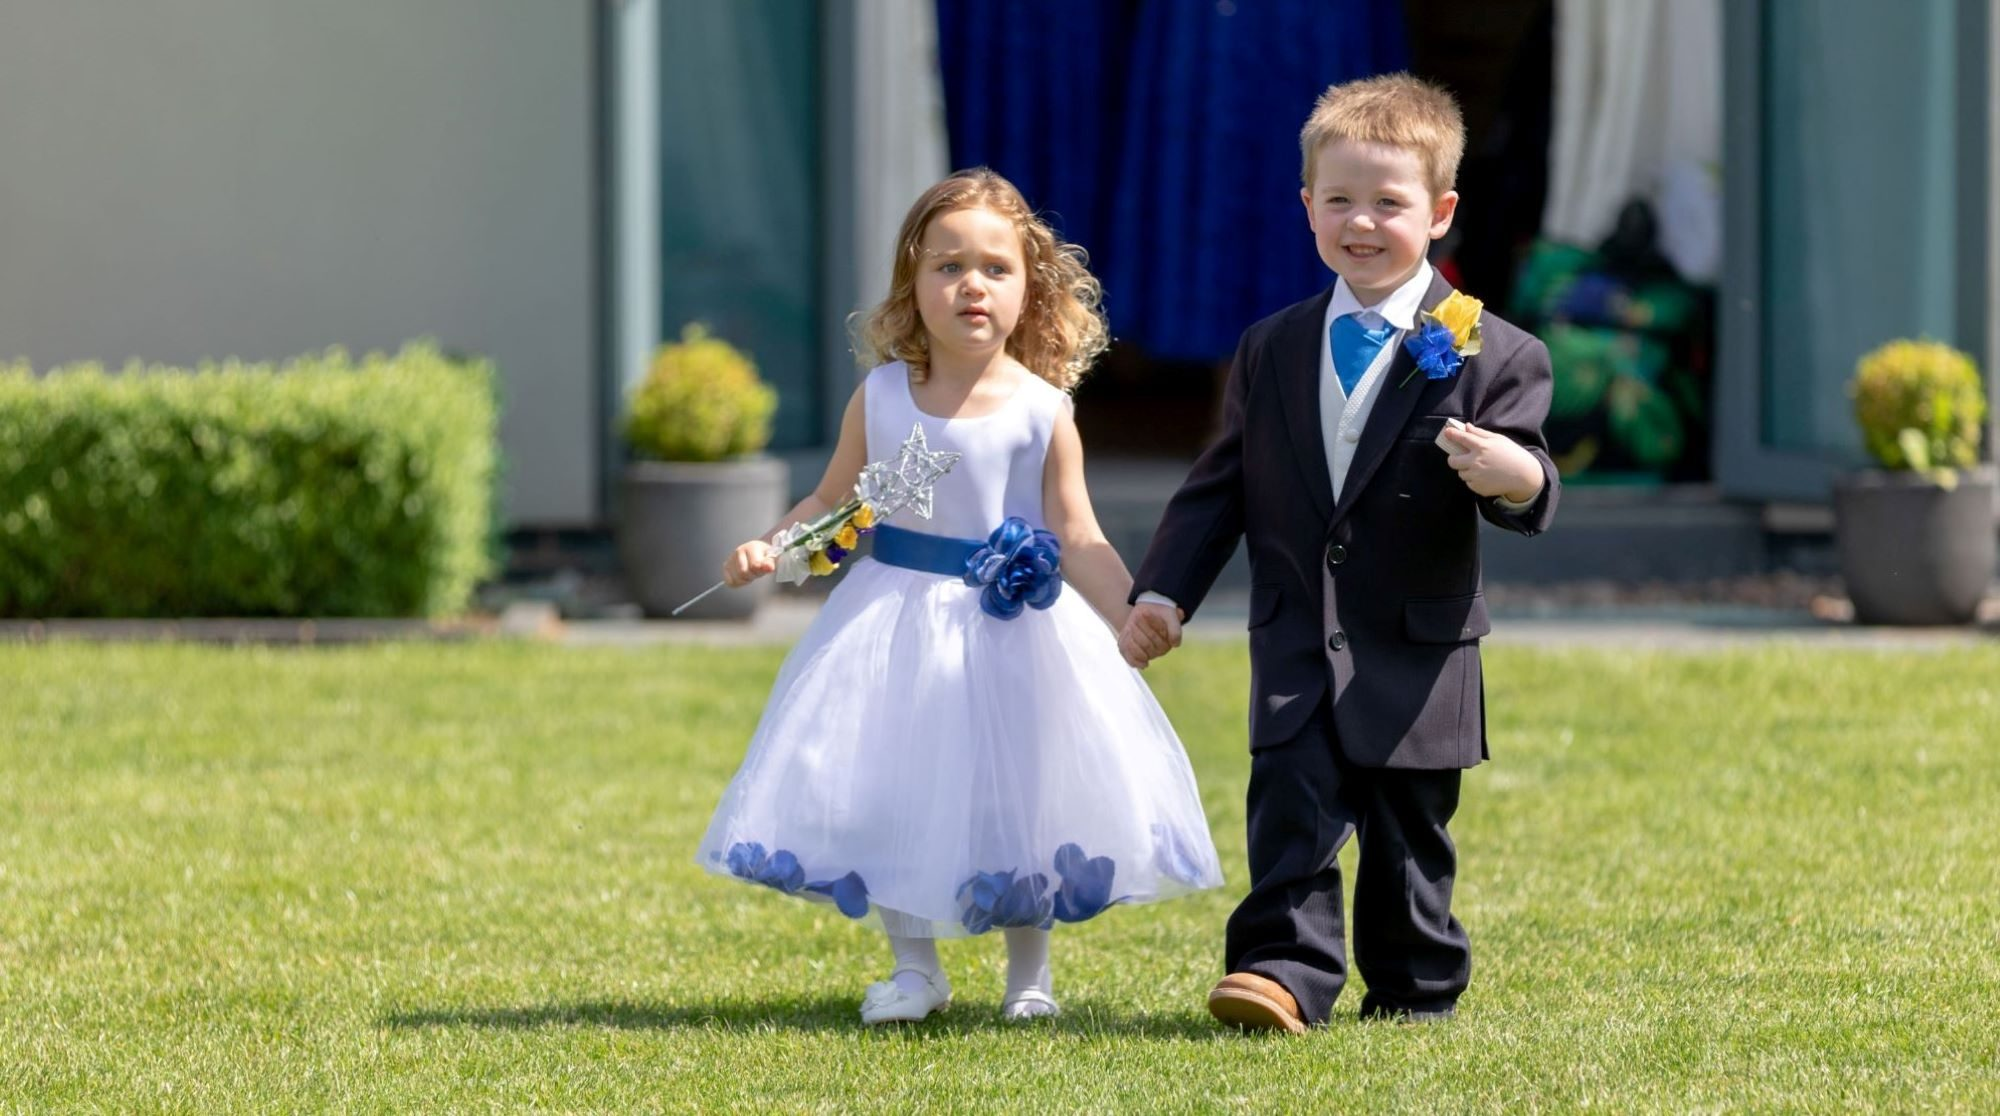 001 flowergirl pageboy hold hands manor hill house bromsgrove worcestershire oxfordshire wedding photography